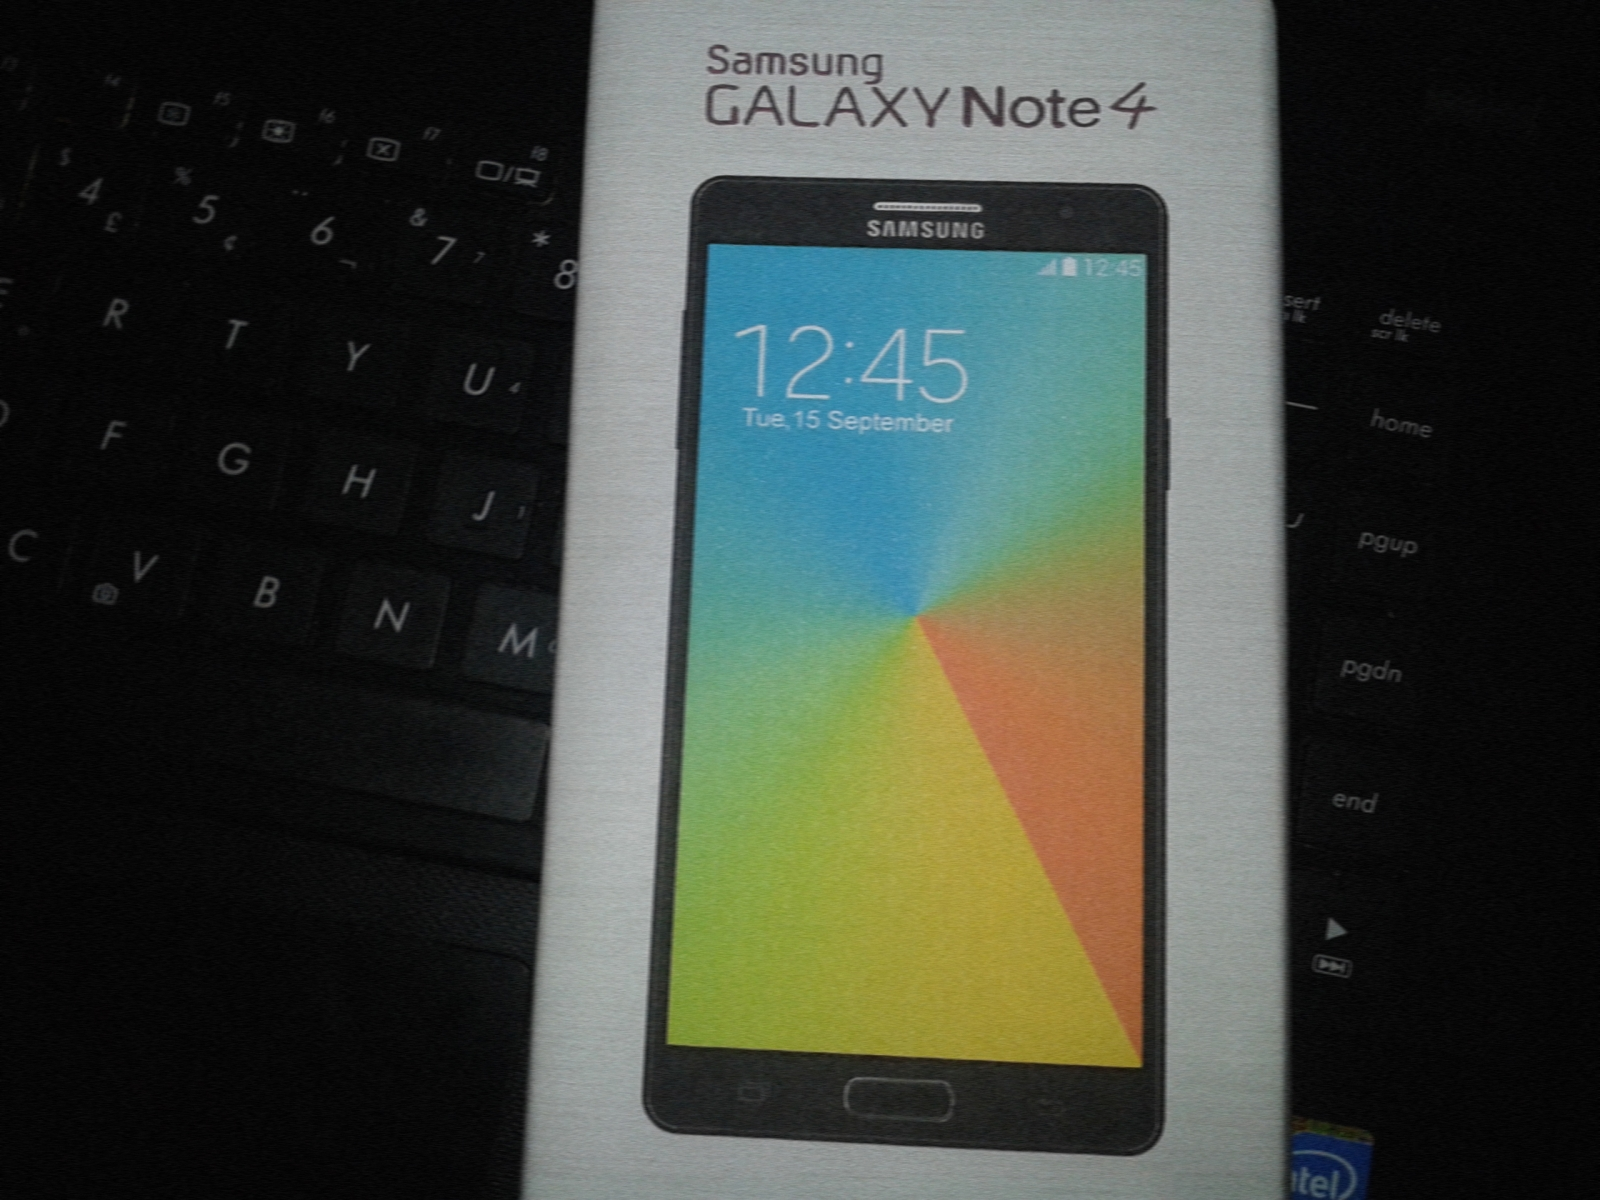 Leaked Image of Galaxy Note 4 Retail Box Goes Viral